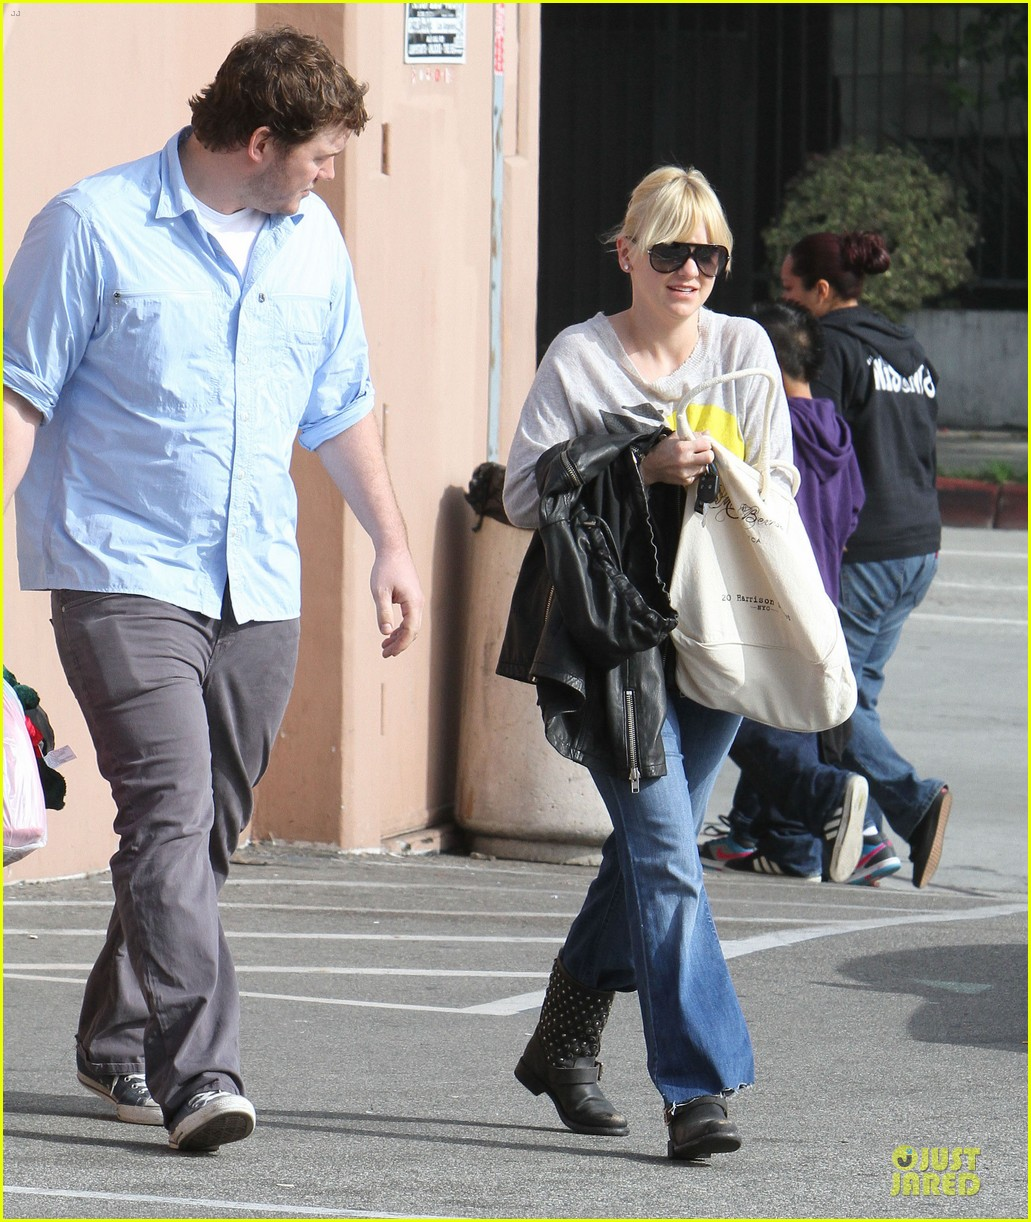 anna faris & chris pratt rite aide shopping couple 112772703